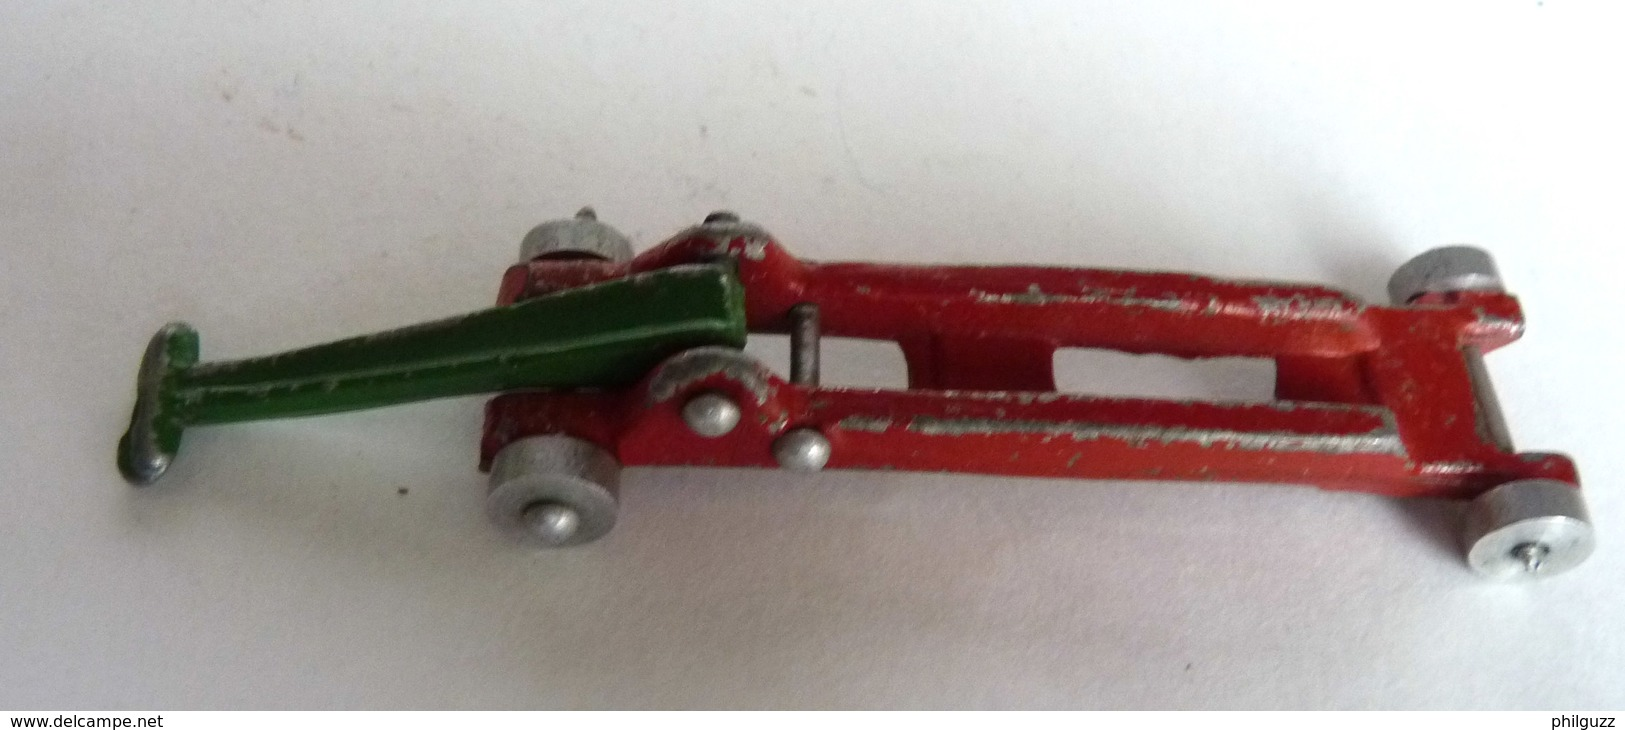 FIGURINE CRIC ROULANT VOITURE MINIATURE DINKY TOYS GARAGE STATION - Quiralu